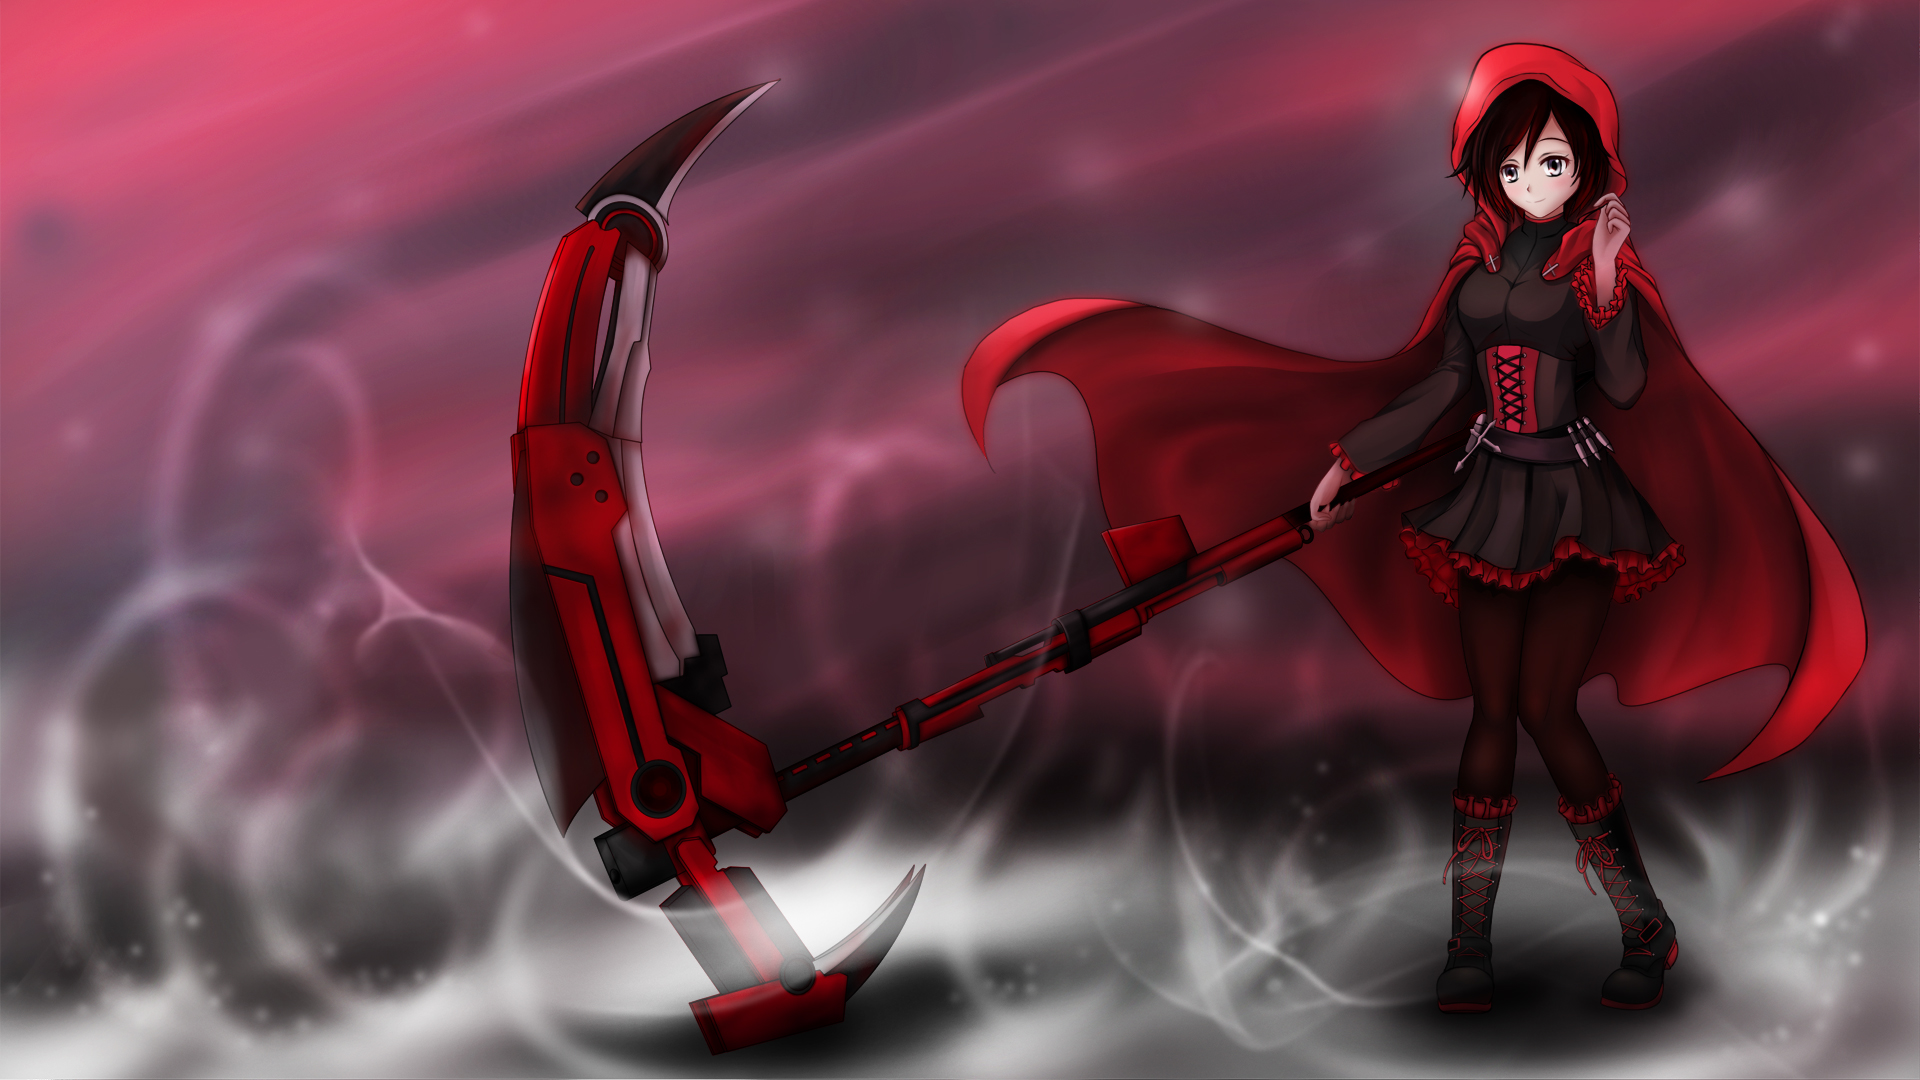 ruby rose rwby wallpaper wallpapersafari